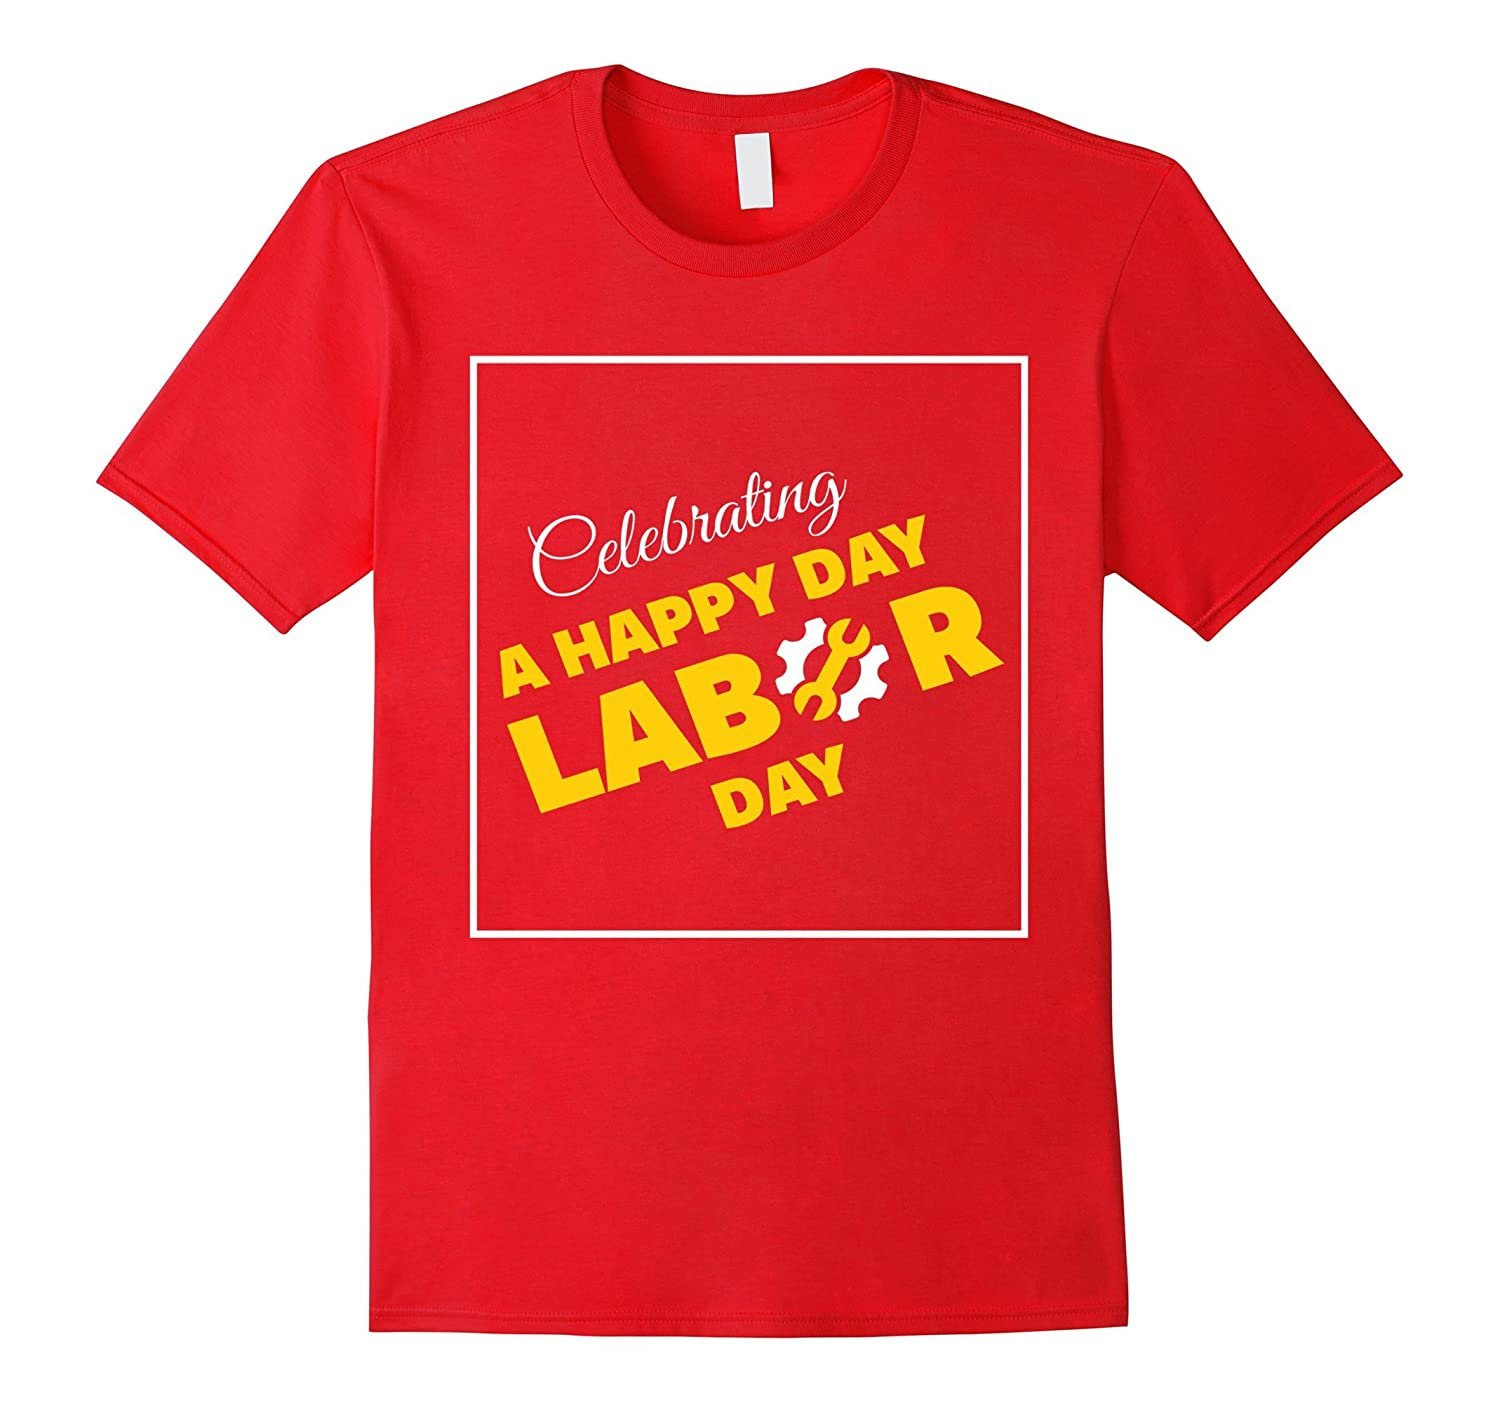 Celebrating A Happy Day Labor Day Gift Shirt-BN